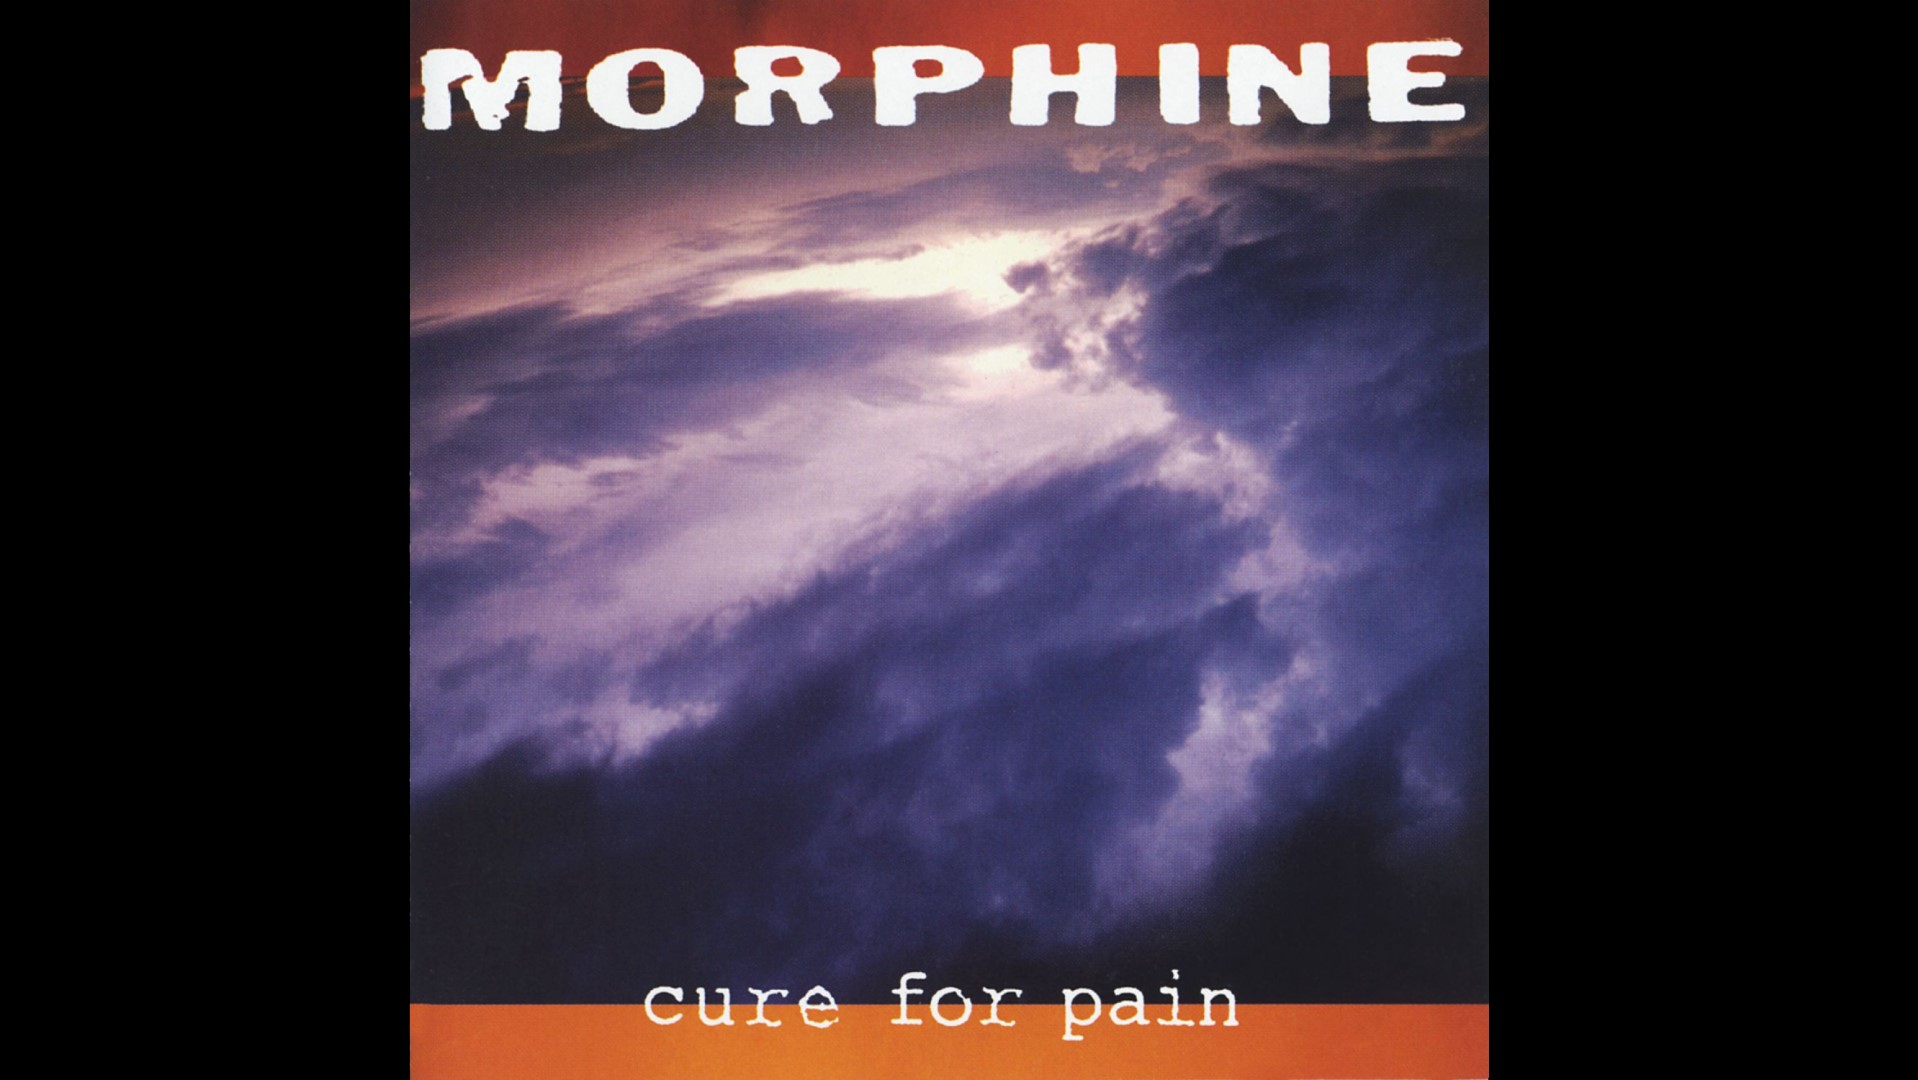 Morphine Album Cure For Pain